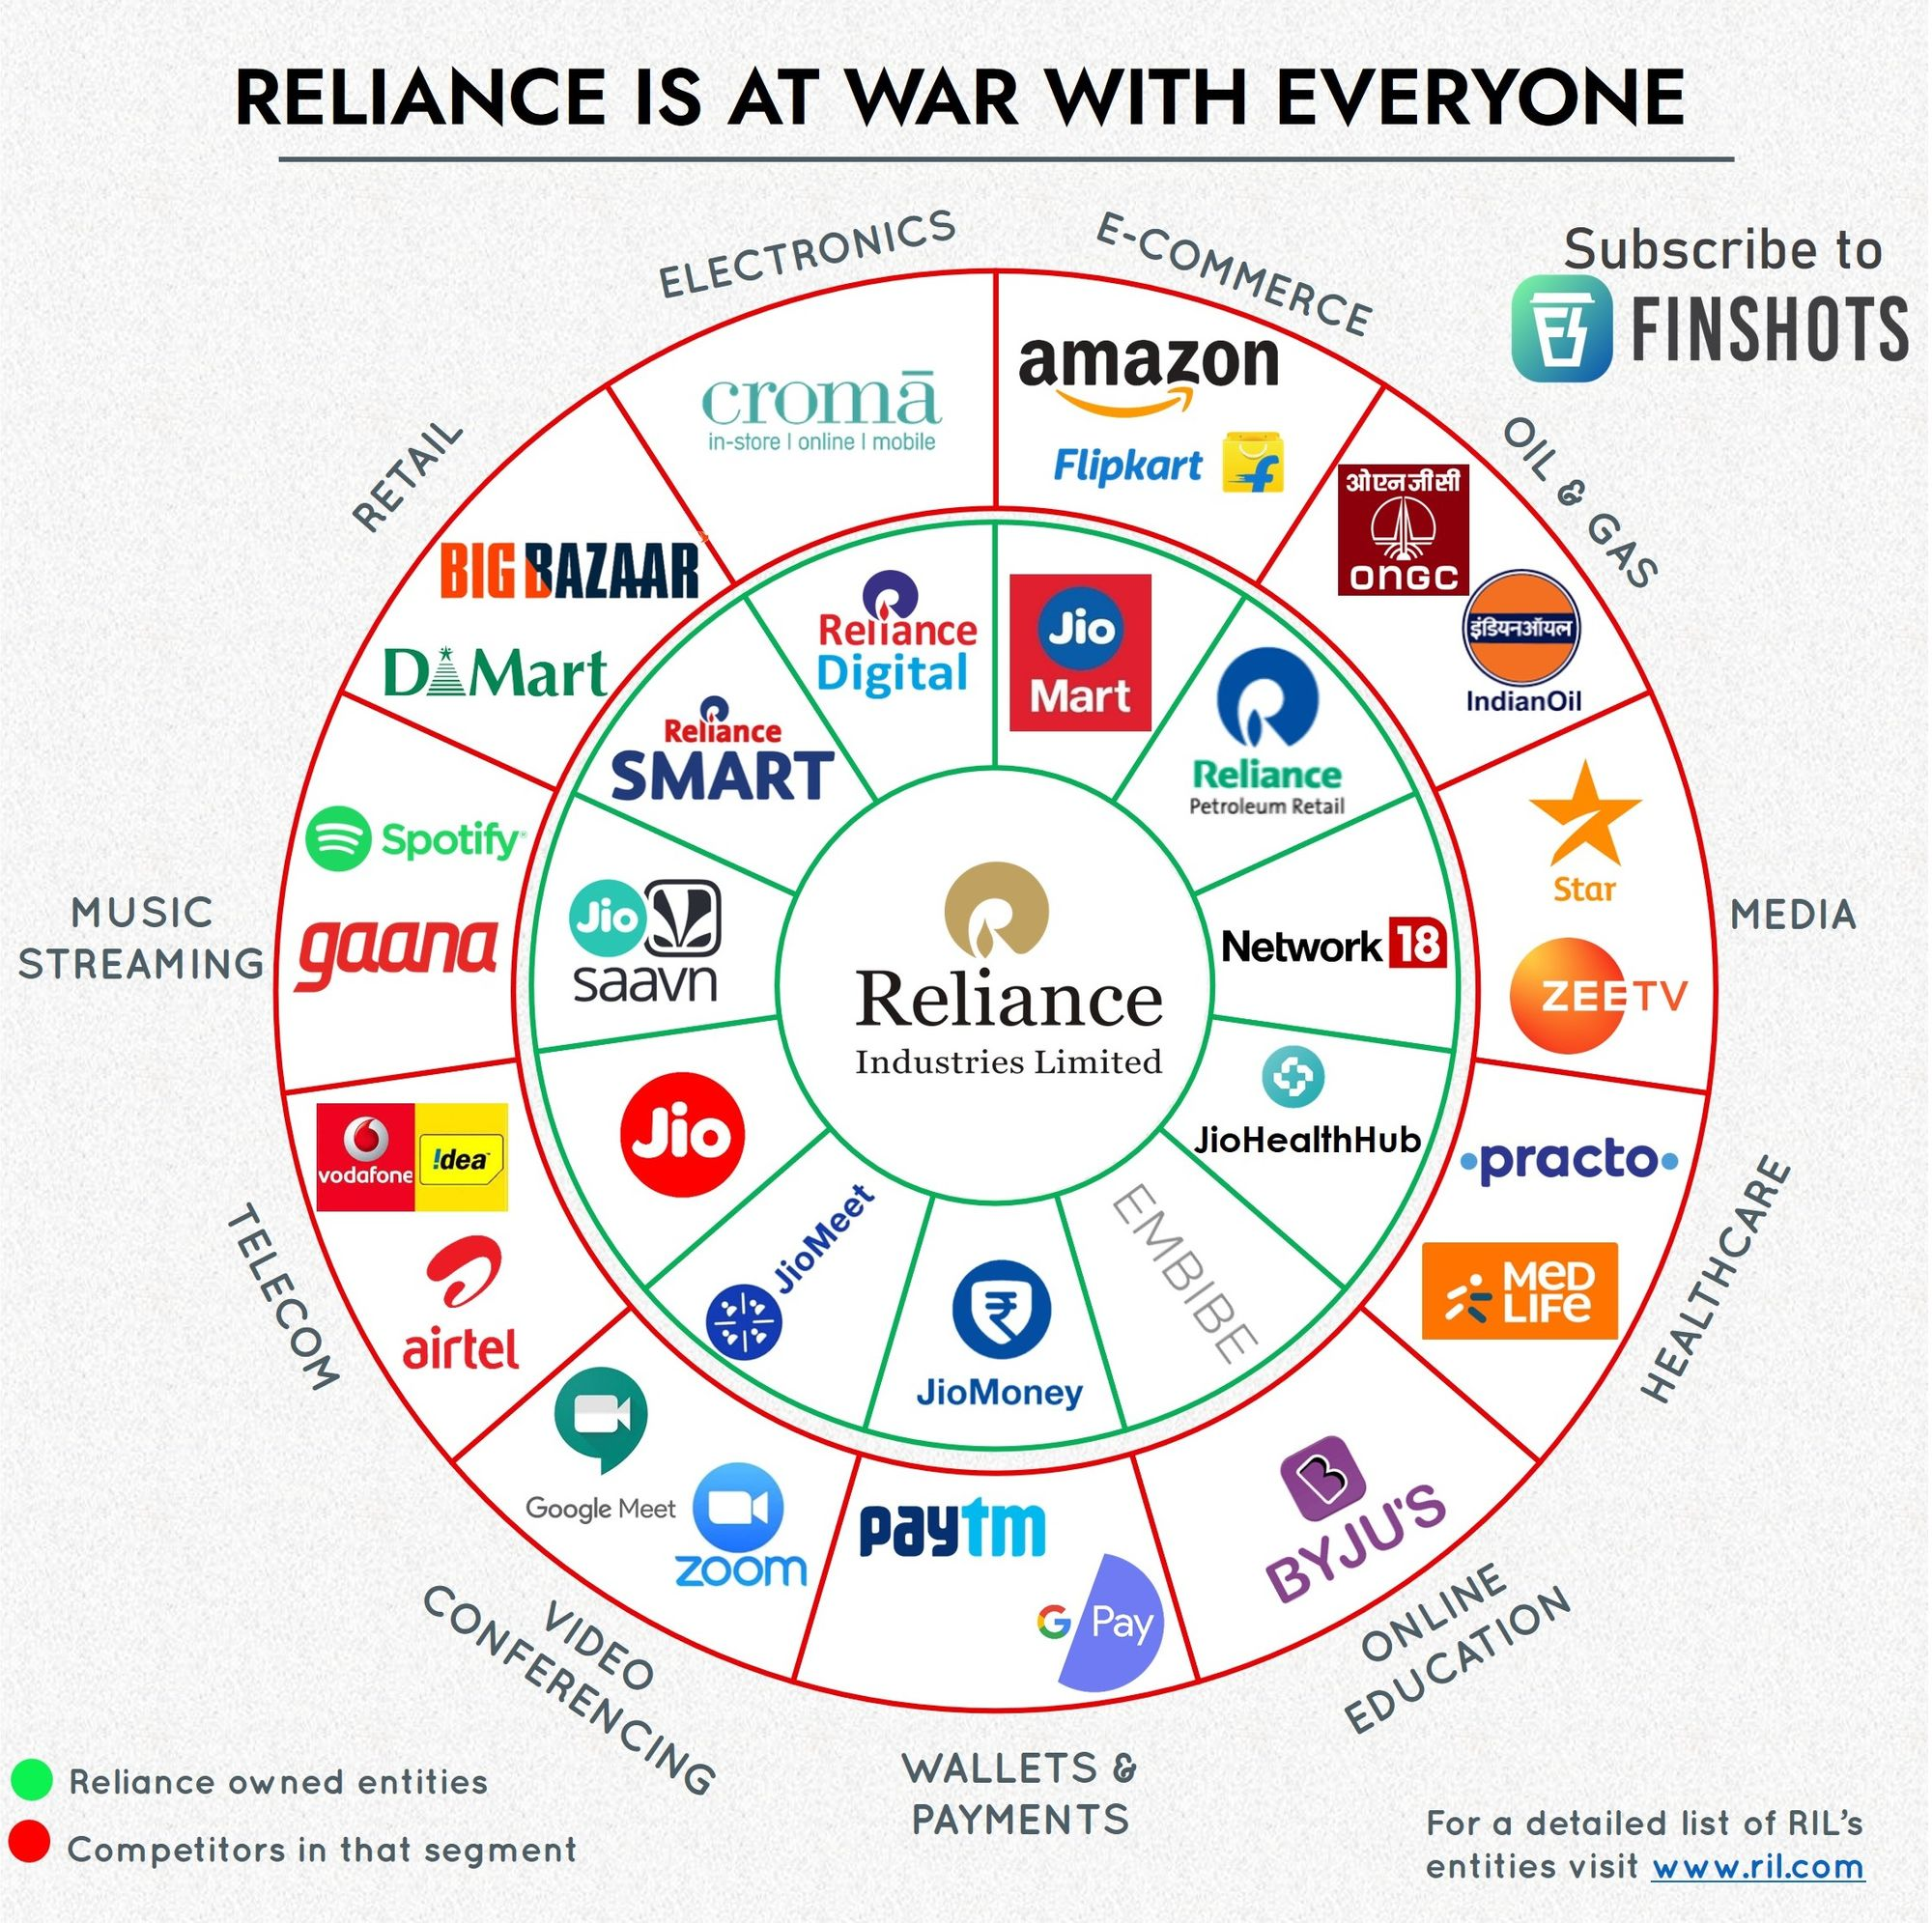 Reliance is at war with everyone